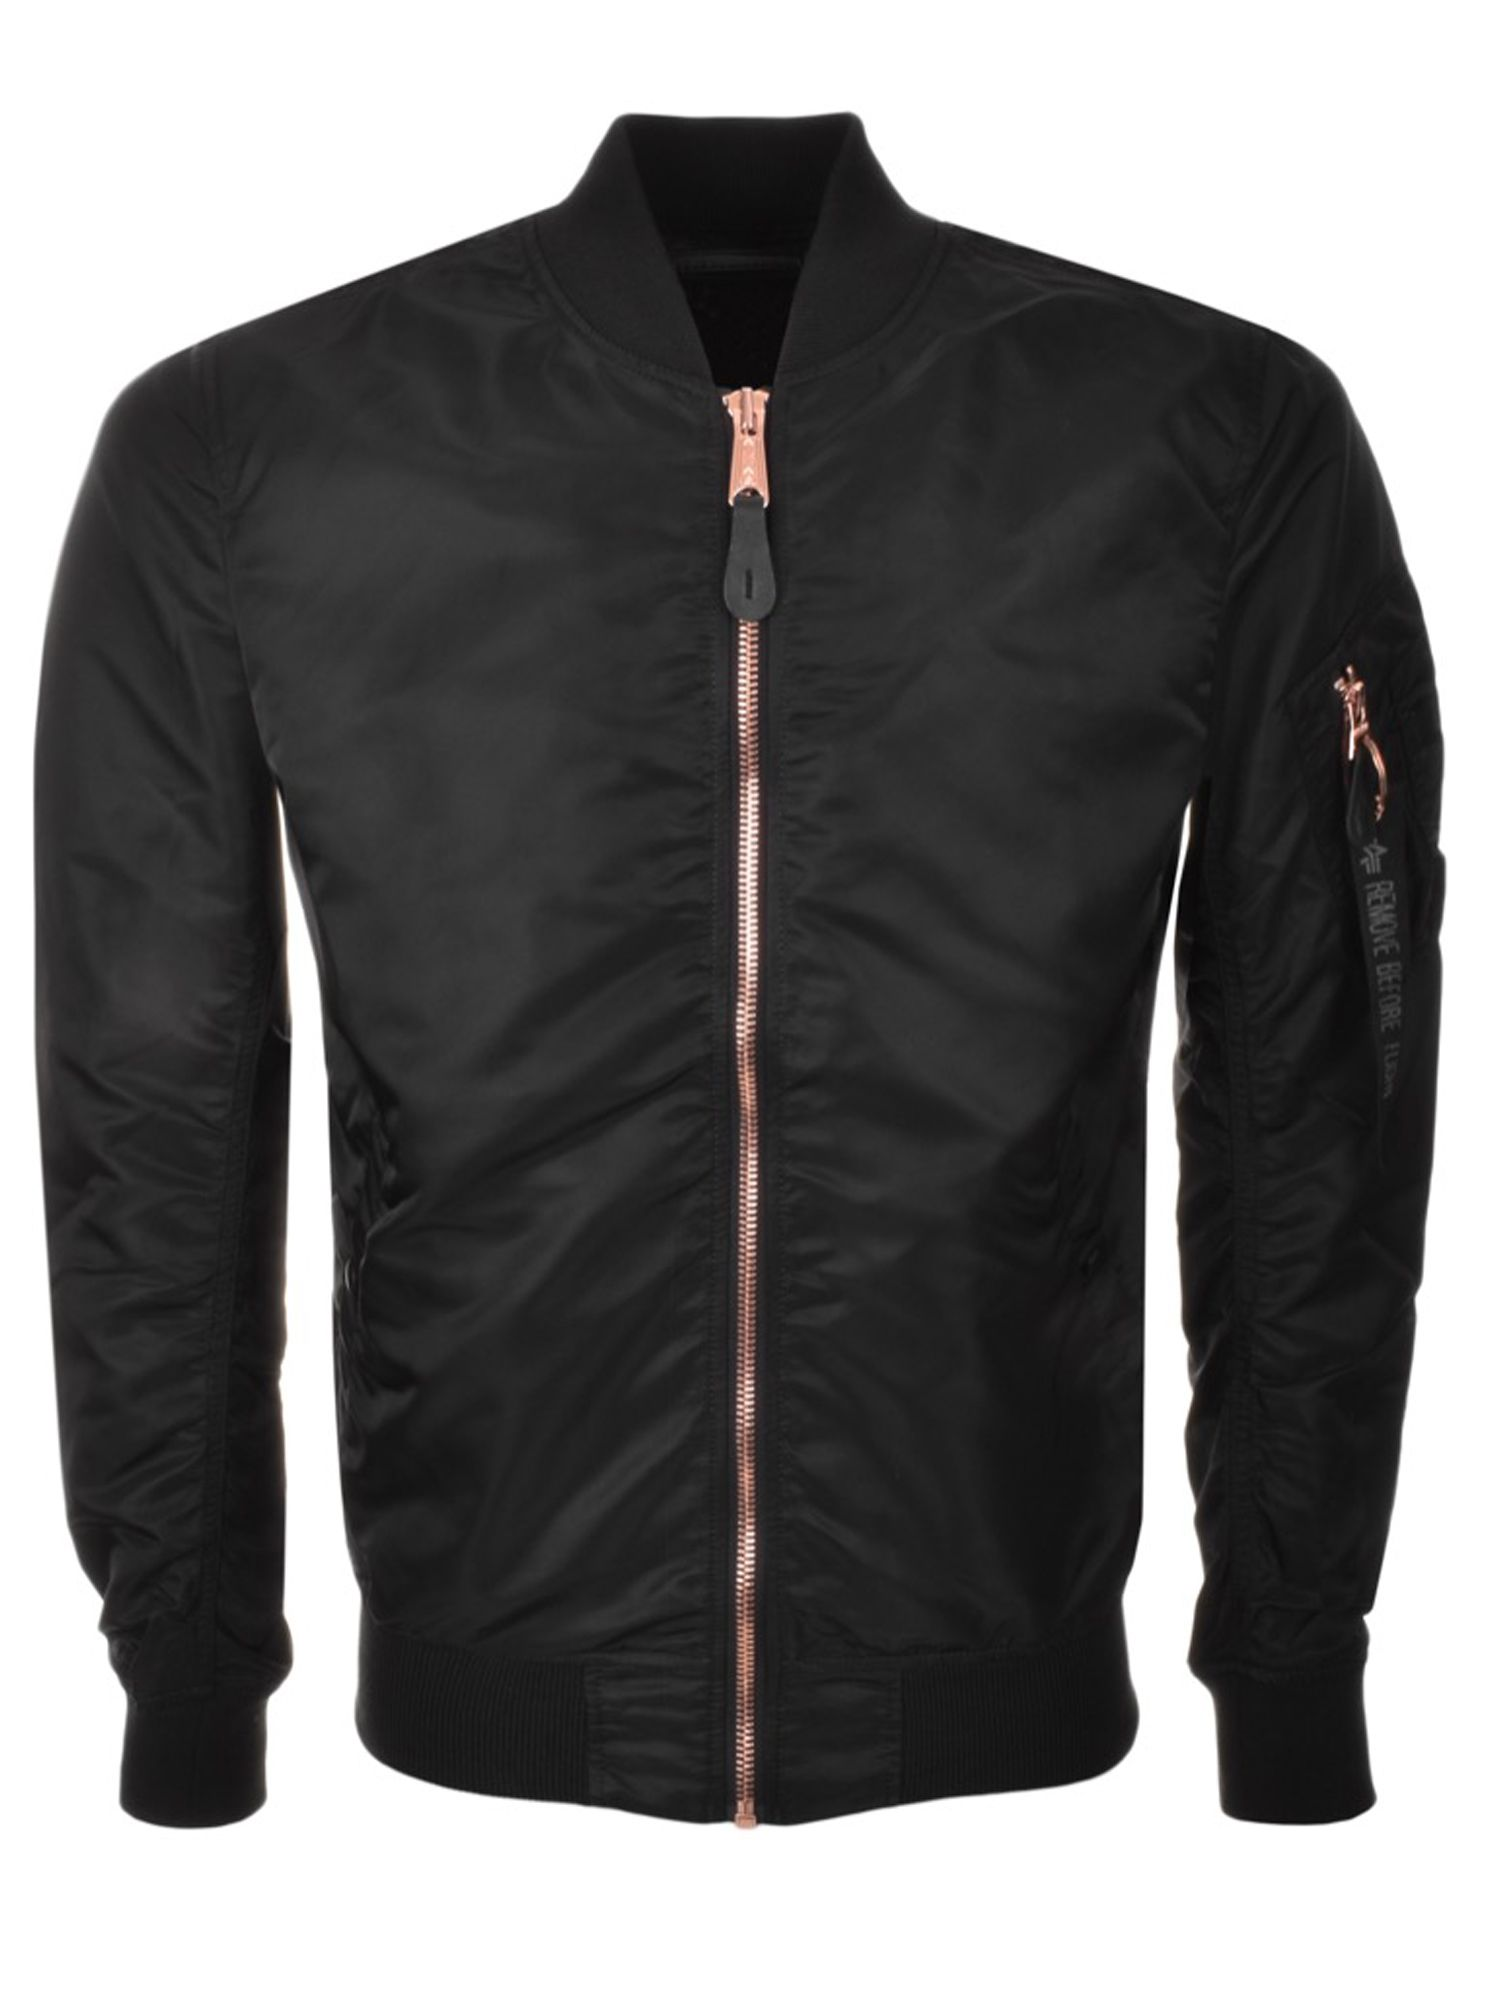 Alpha Industries Men's Alpha Industries Ma-1 vf lw jacket, Black